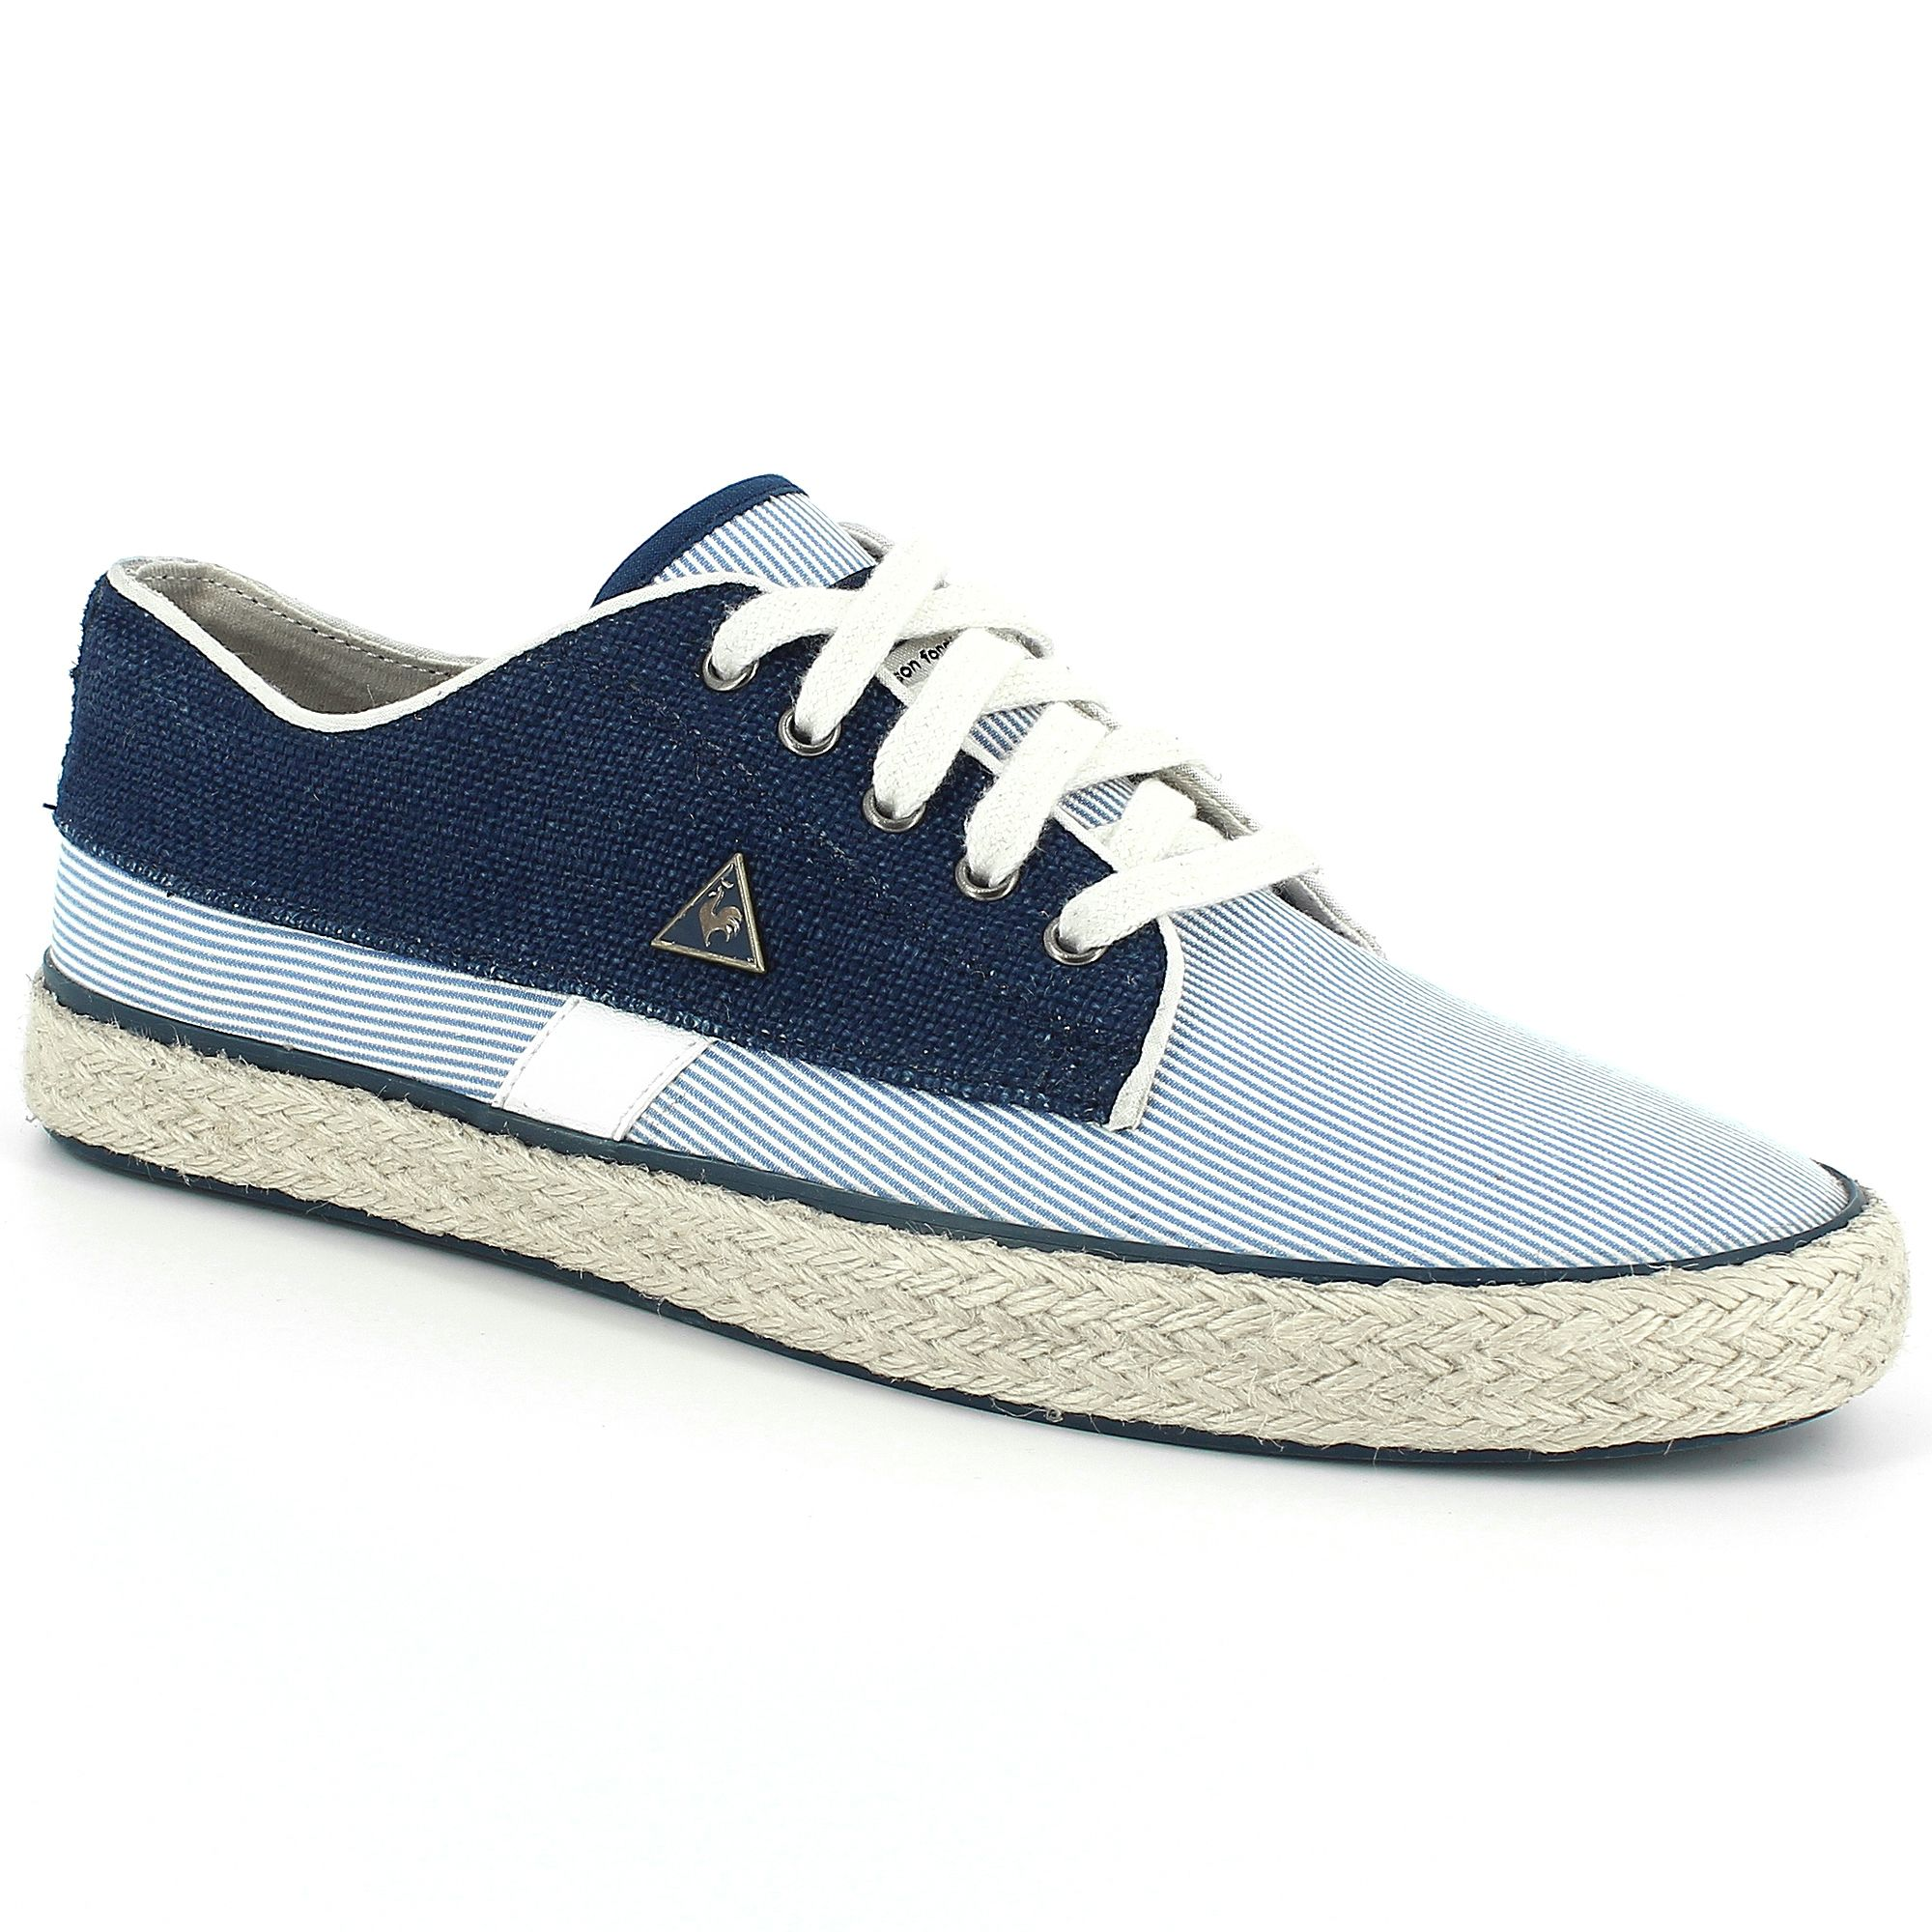 Laumiere, coq Sportif, Any good?